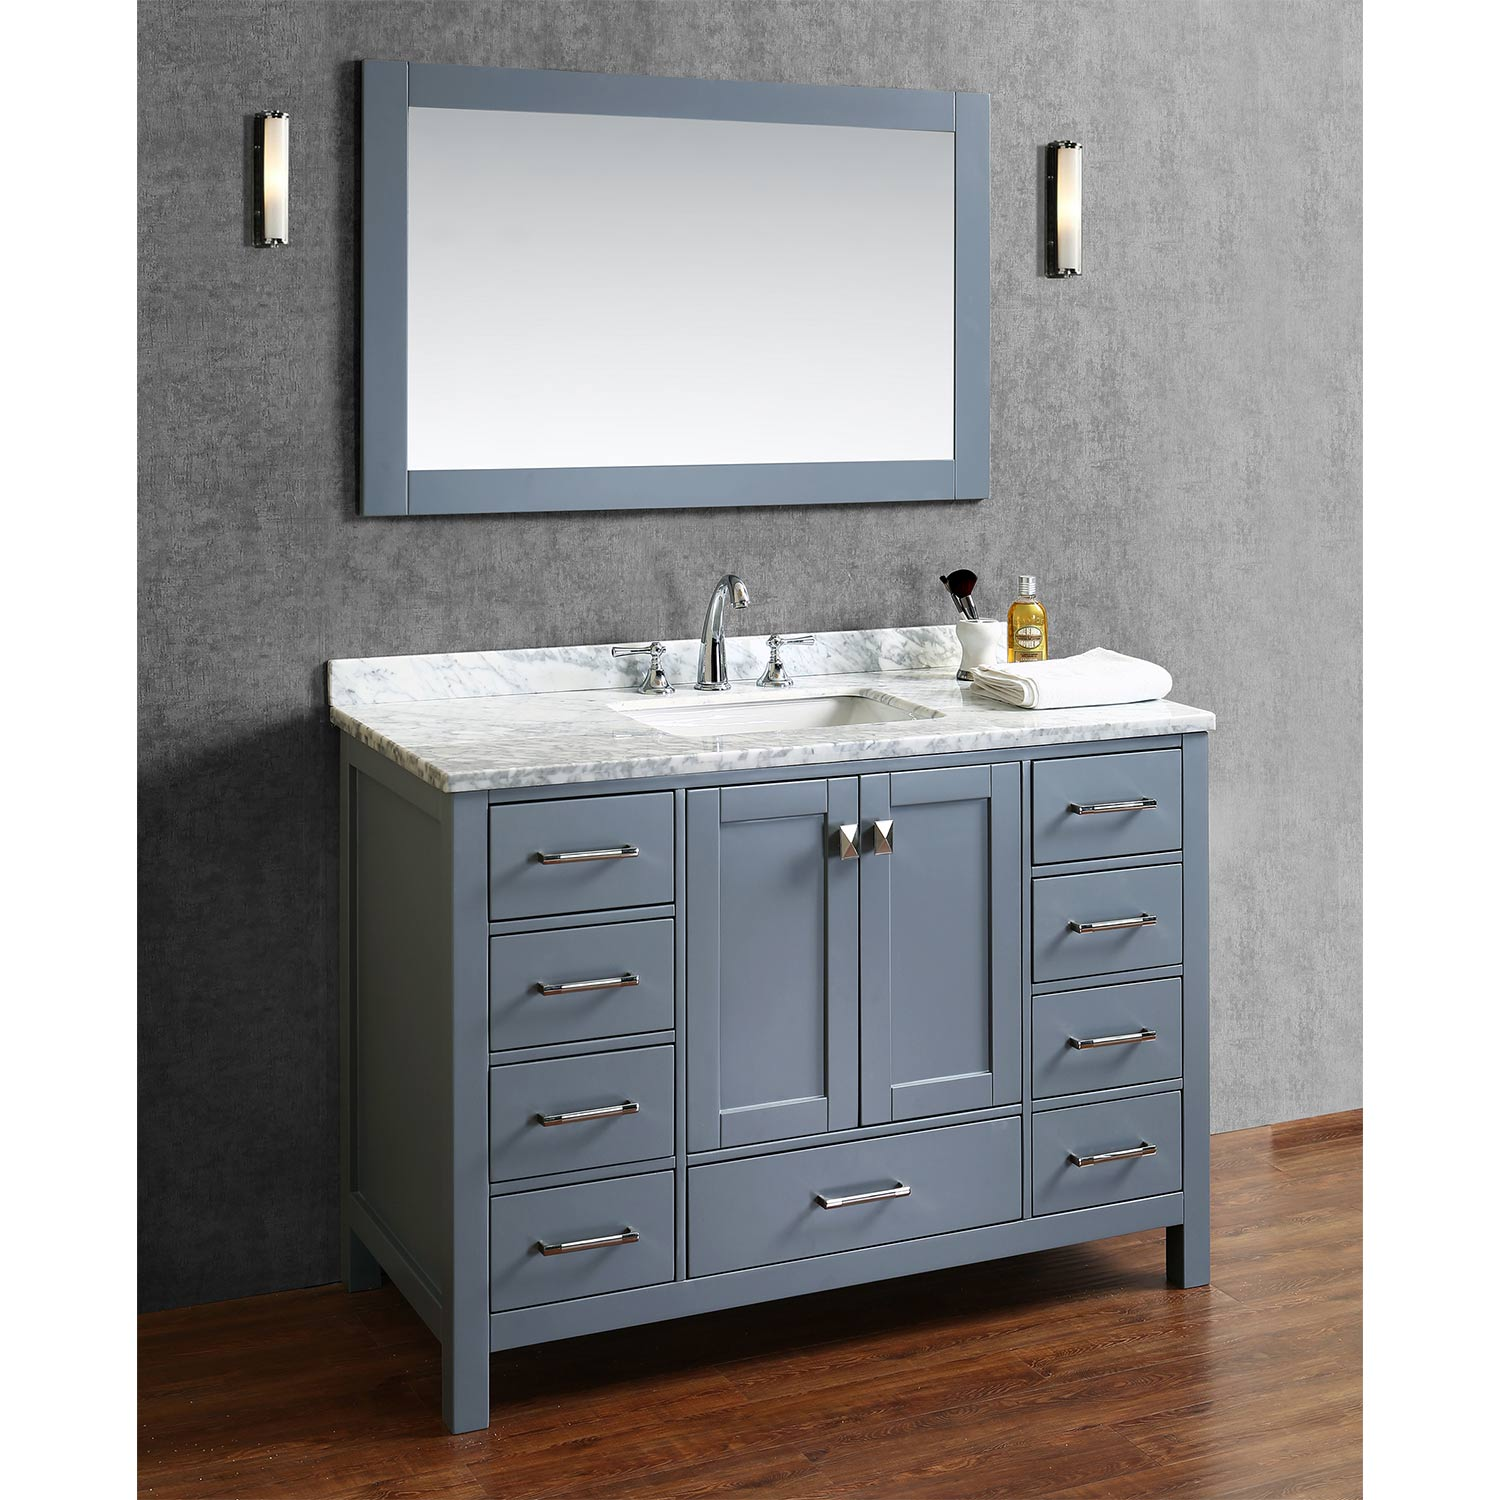 Buy vincent 48 inch solid wood single bathroom vanity in for Single bathroom vanity